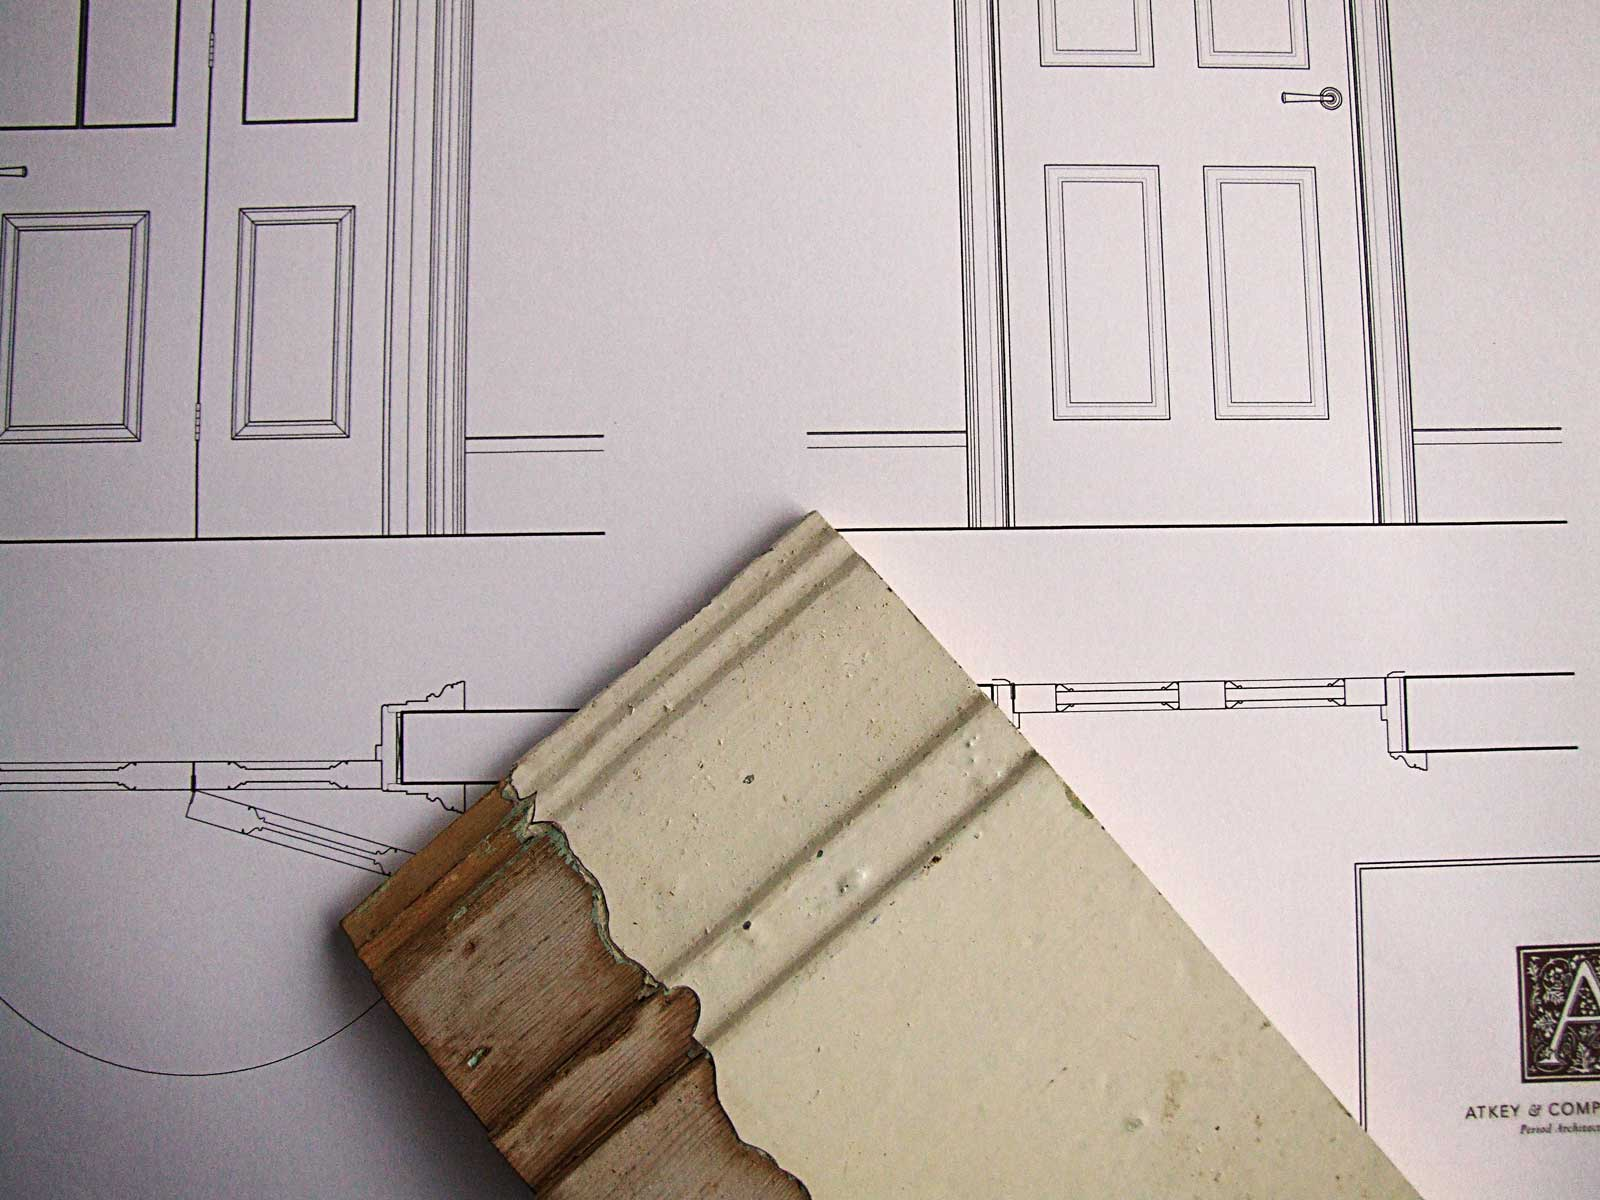 Architectural plans based on historic samples of mouldings that now make up our unique catalogue